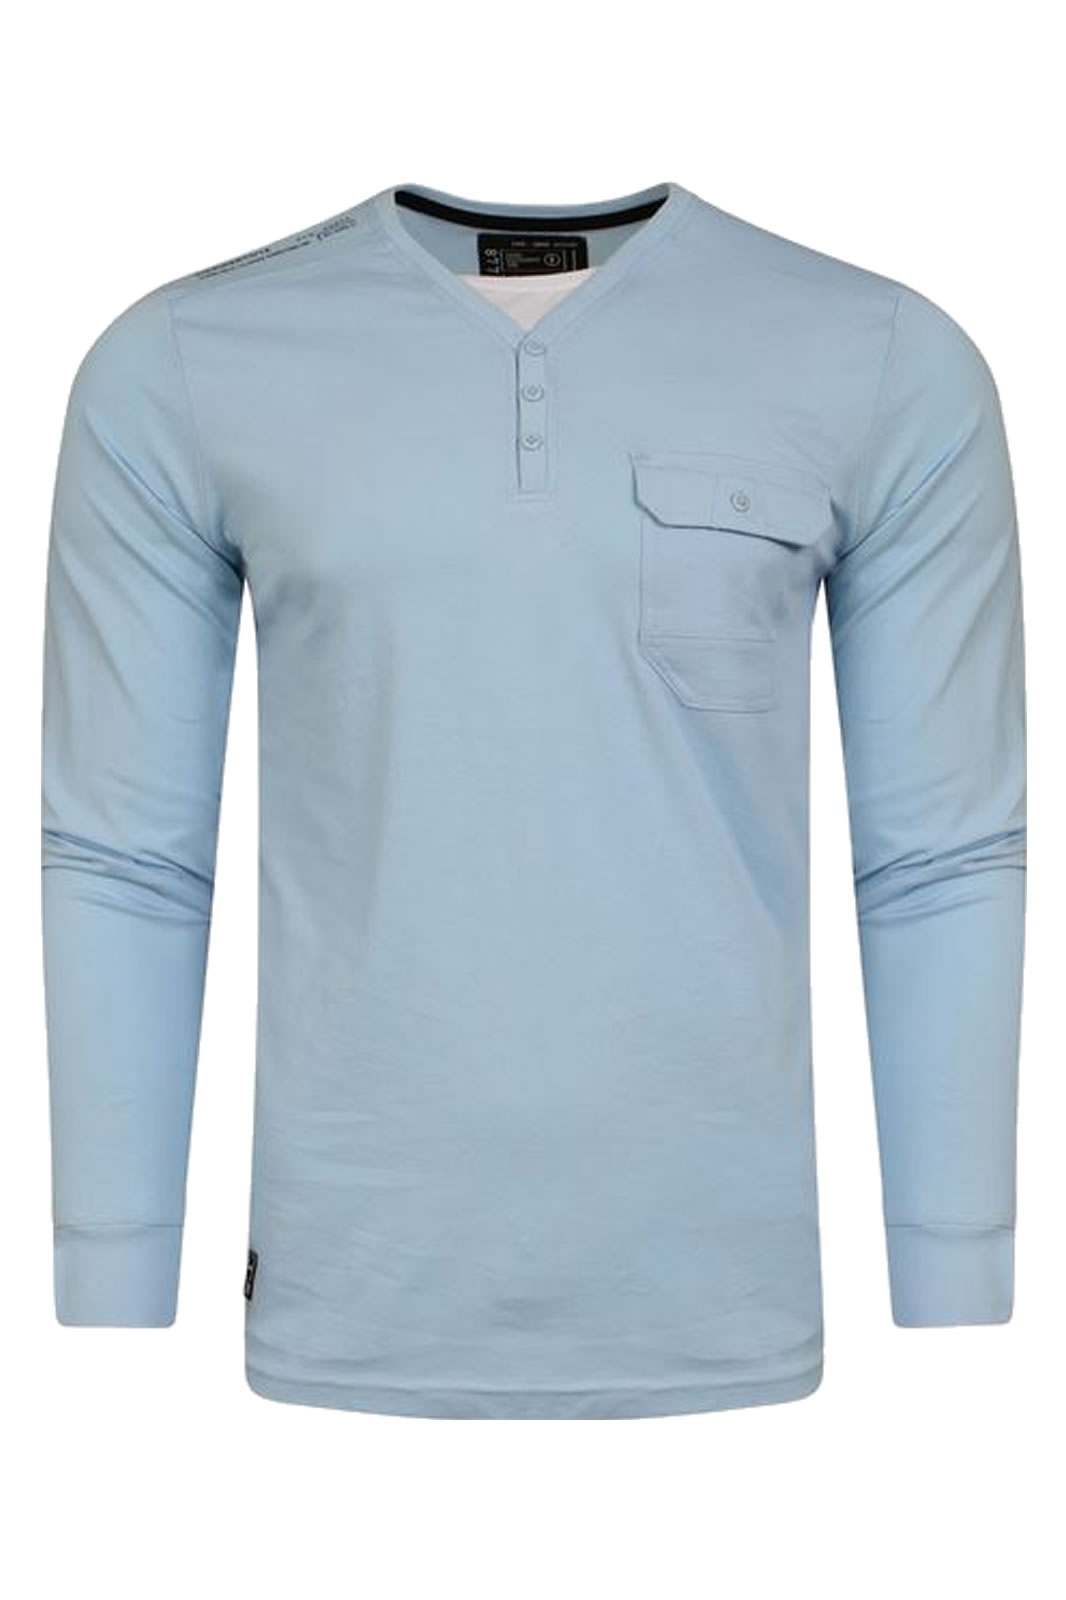 Mens Dissident Whyer Long Sleeve  Y Neck Cotton TopClearance Item